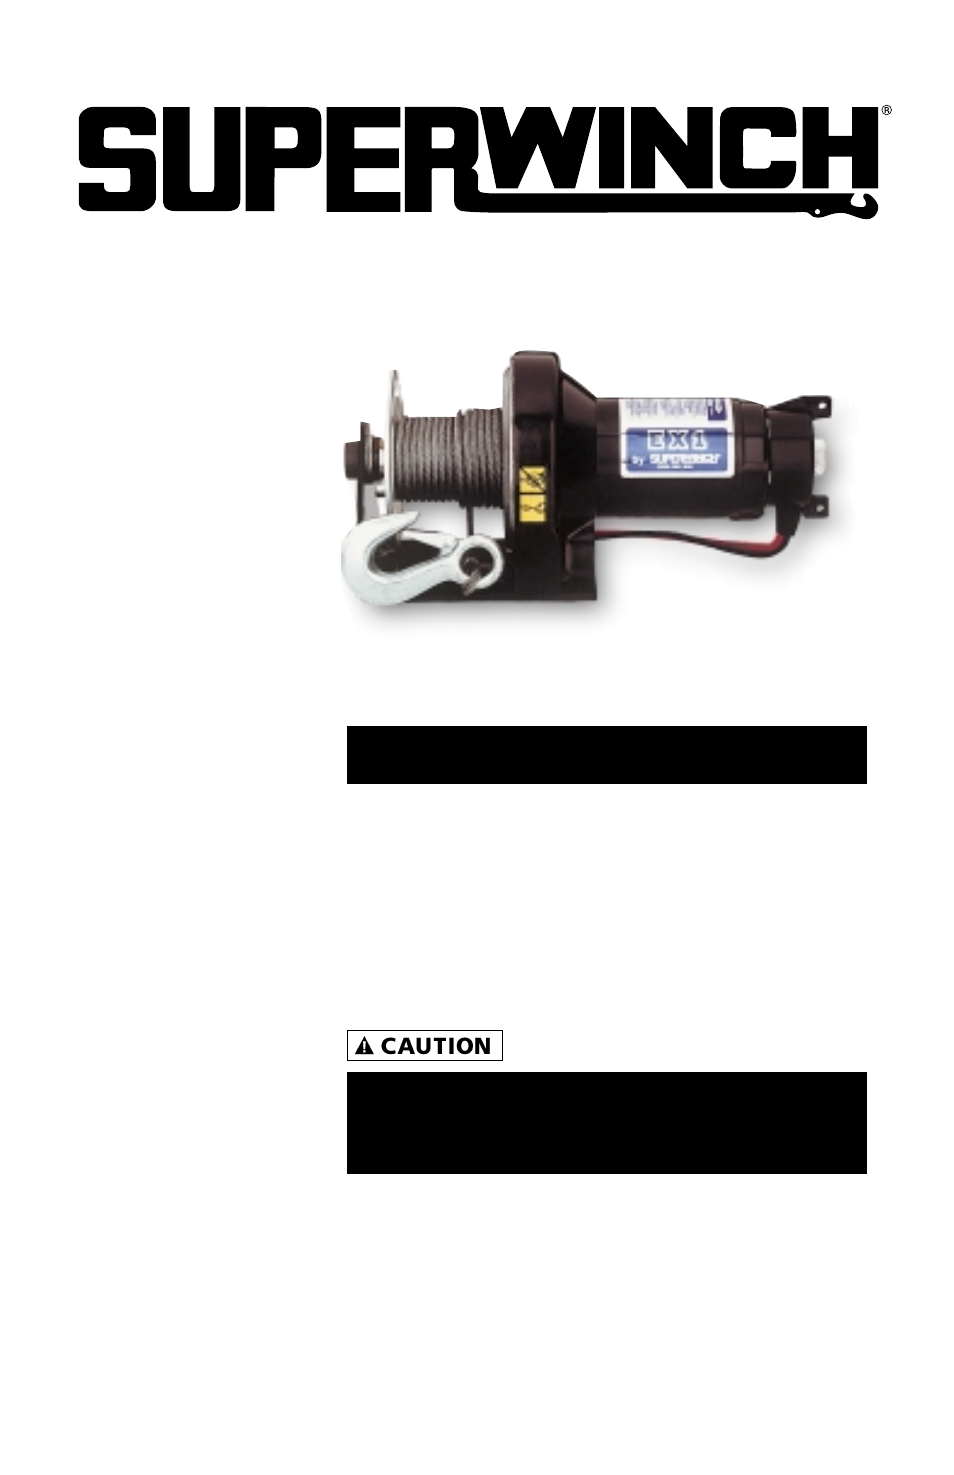 Superwinch Ex1  U2013 453 Kgs  12v  1110  User Manual